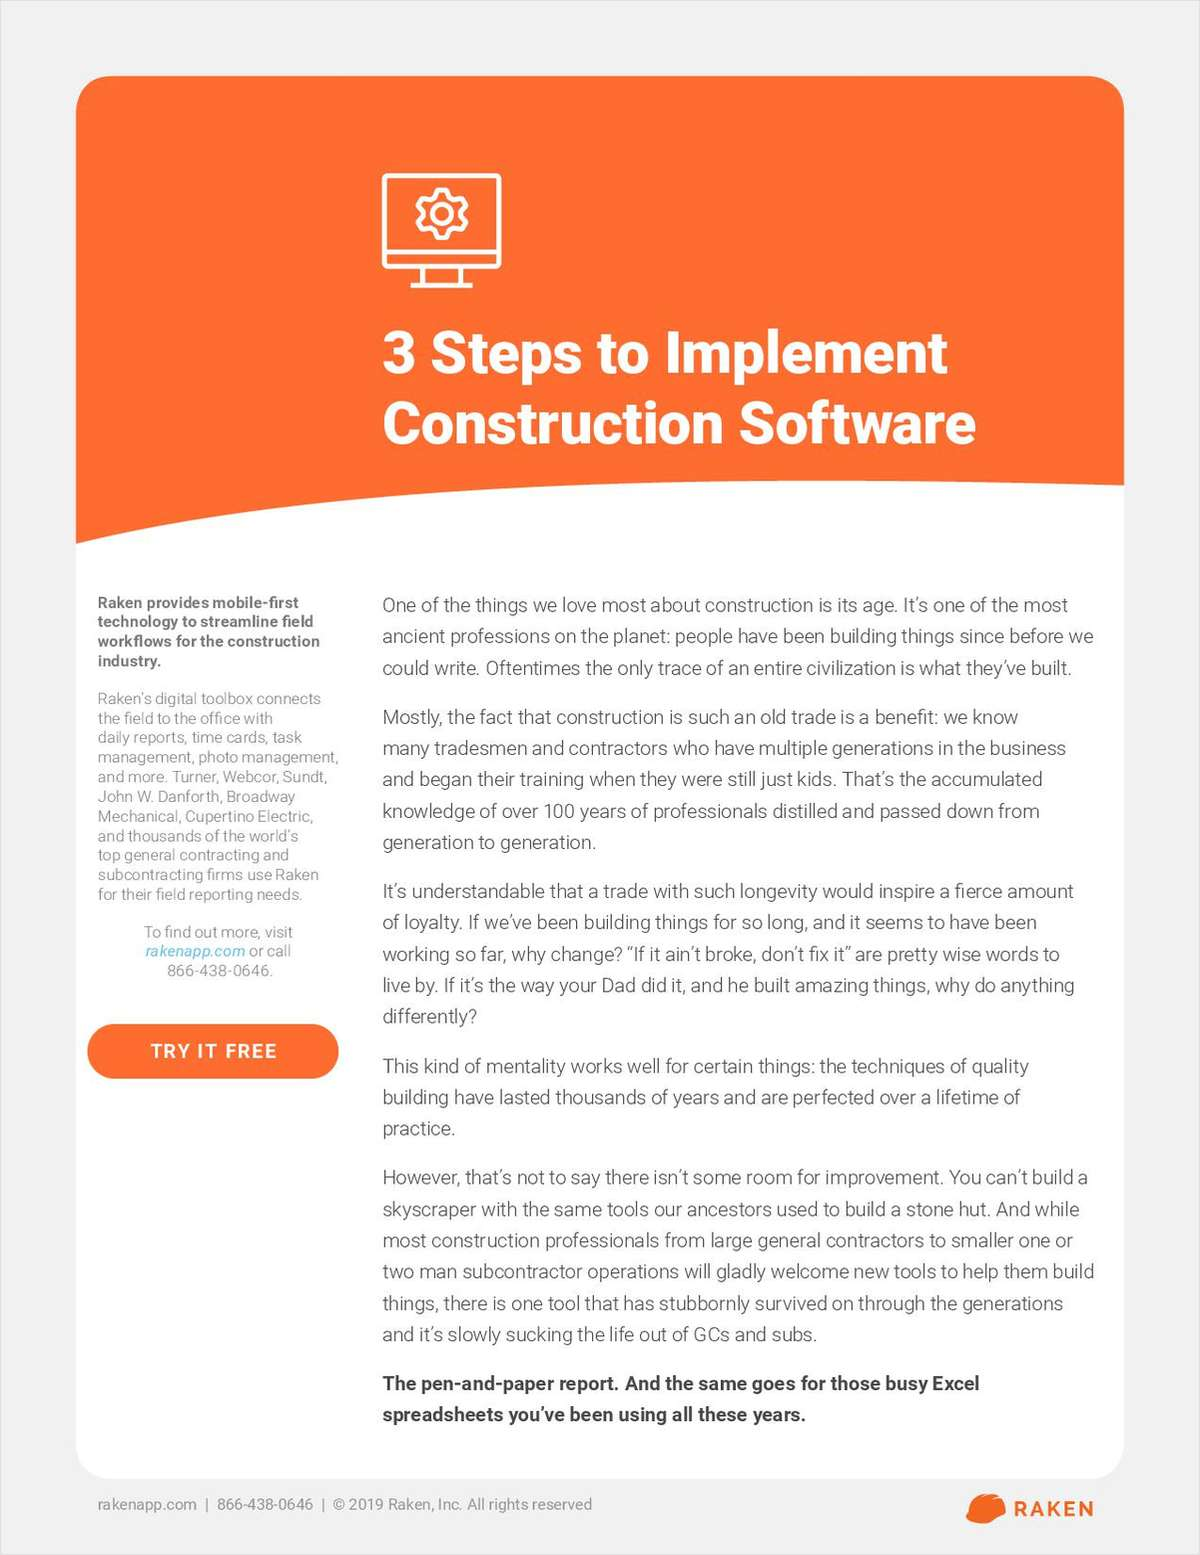 3 Steps to Implement Construction Software